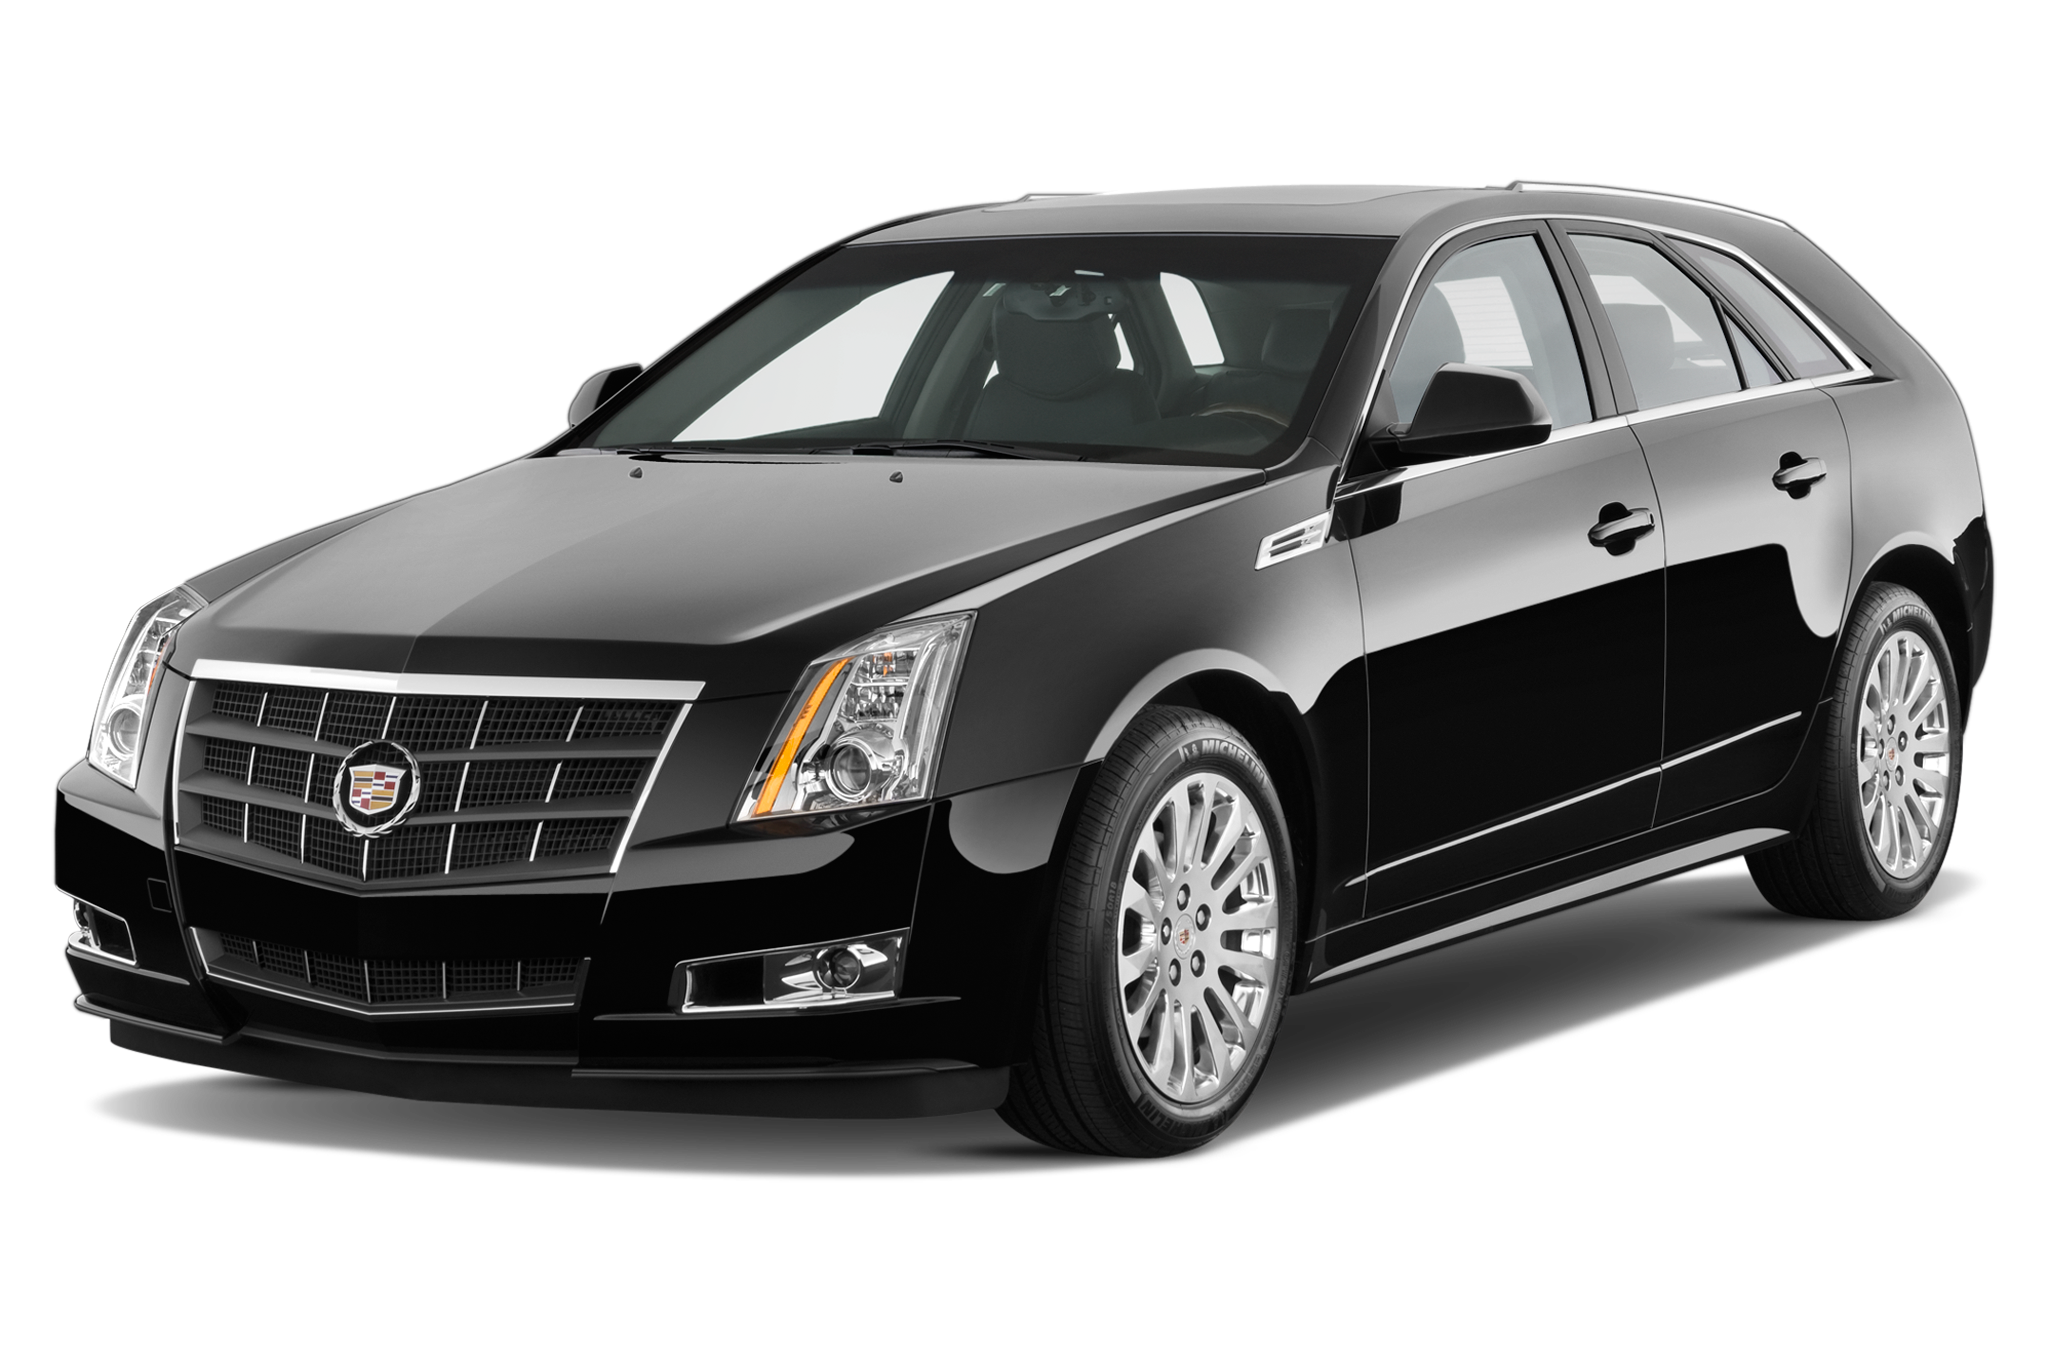 2010 cadillac cts wagon premium editor 39 s notebook. Black Bedroom Furniture Sets. Home Design Ideas